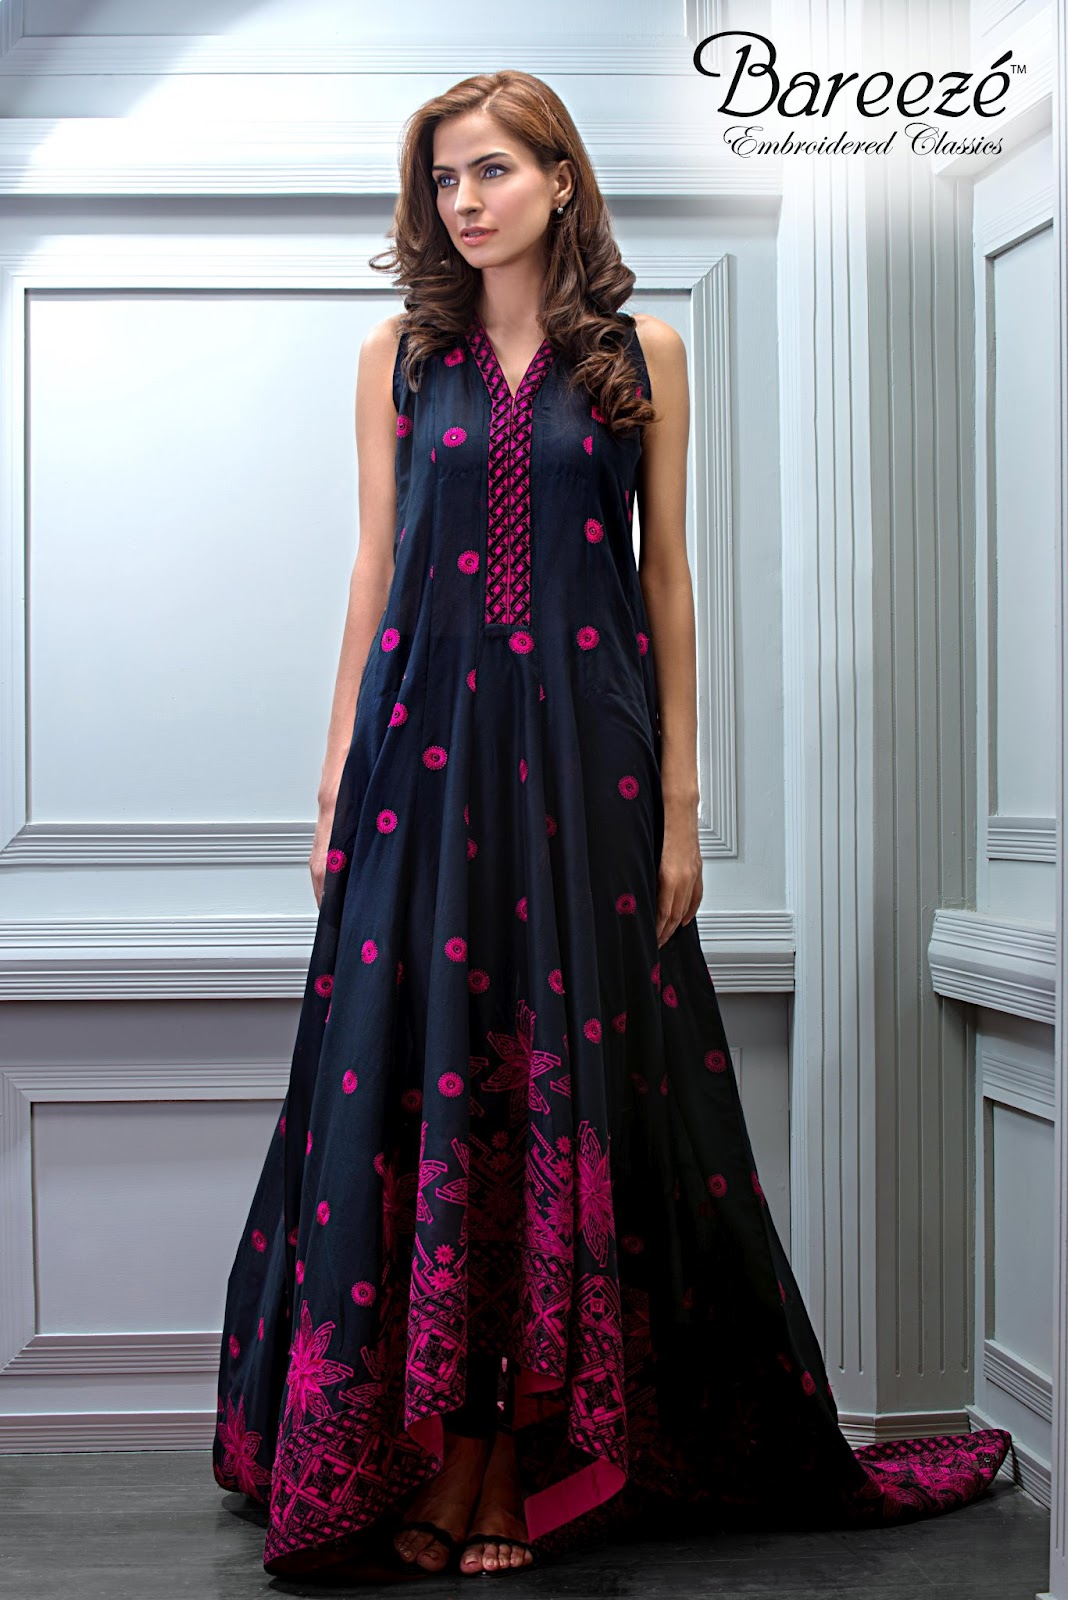 Bareeze live dresses gallery bareeze fashion brand photos designs - Bareeze Embroidered Classic Embroidered Party Wear